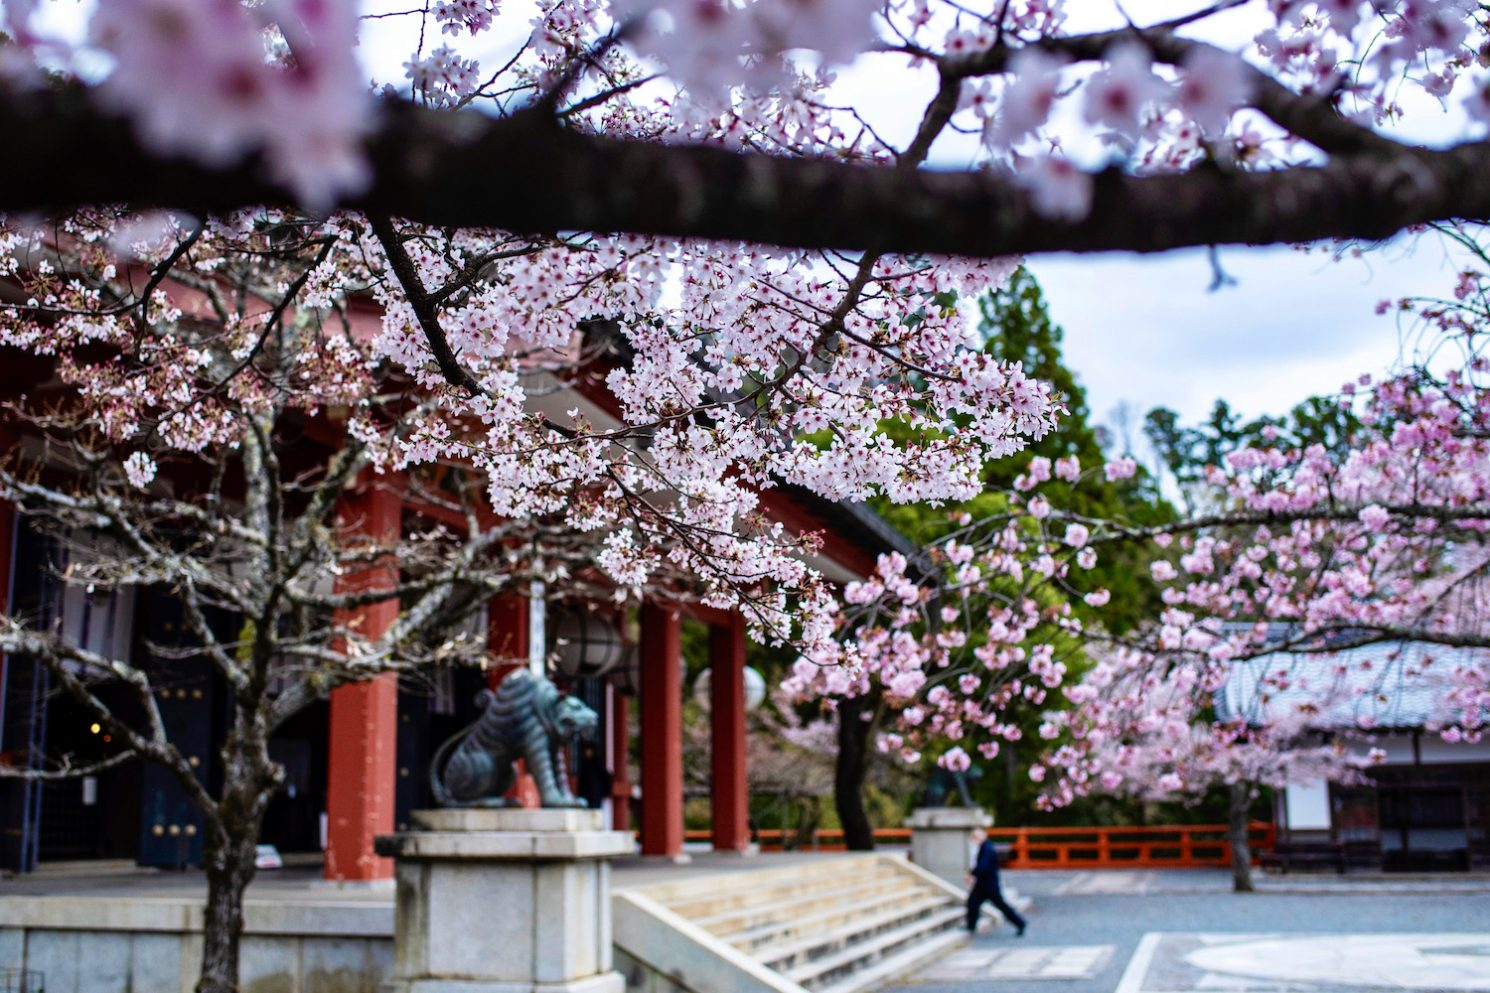 When Will Japan Open to Tourism Again?